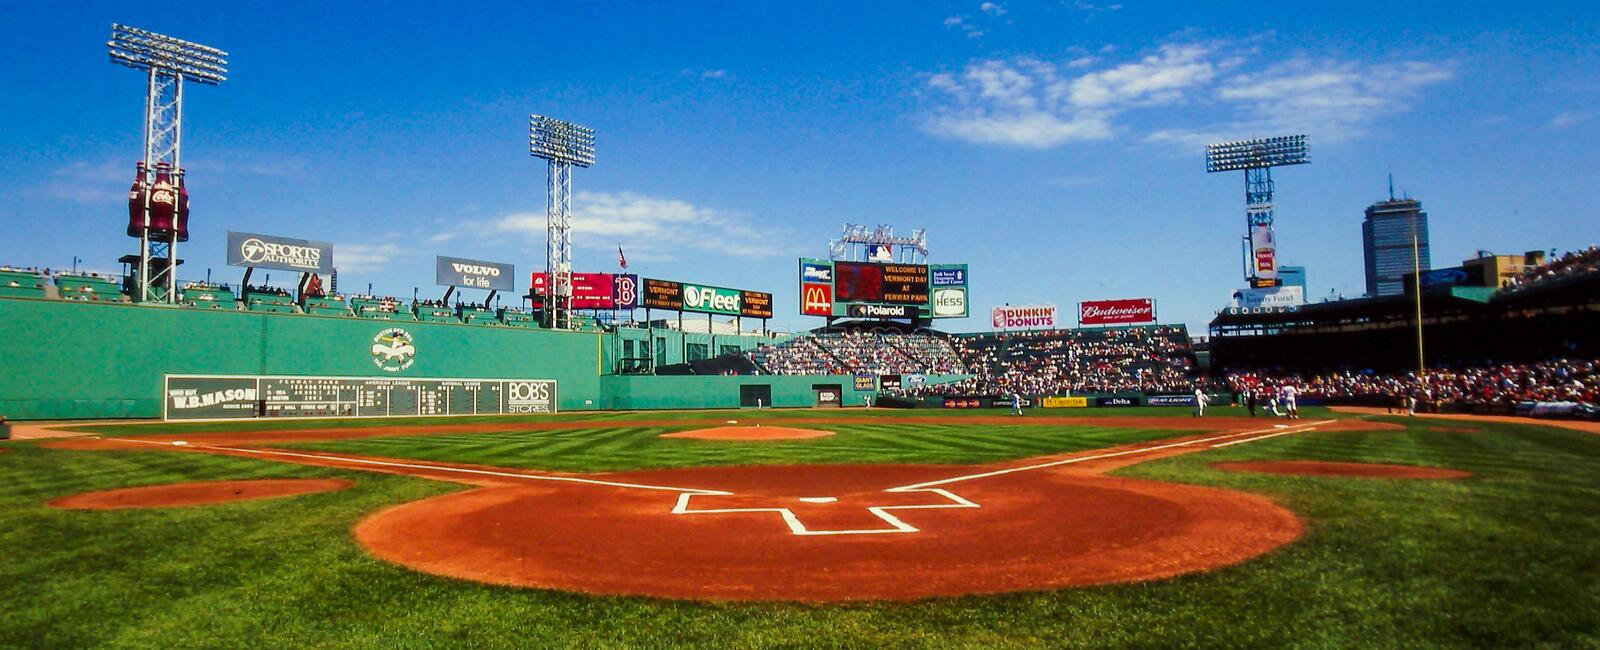 Fenway Park Panoramic View Editorial Stock Image Image Of